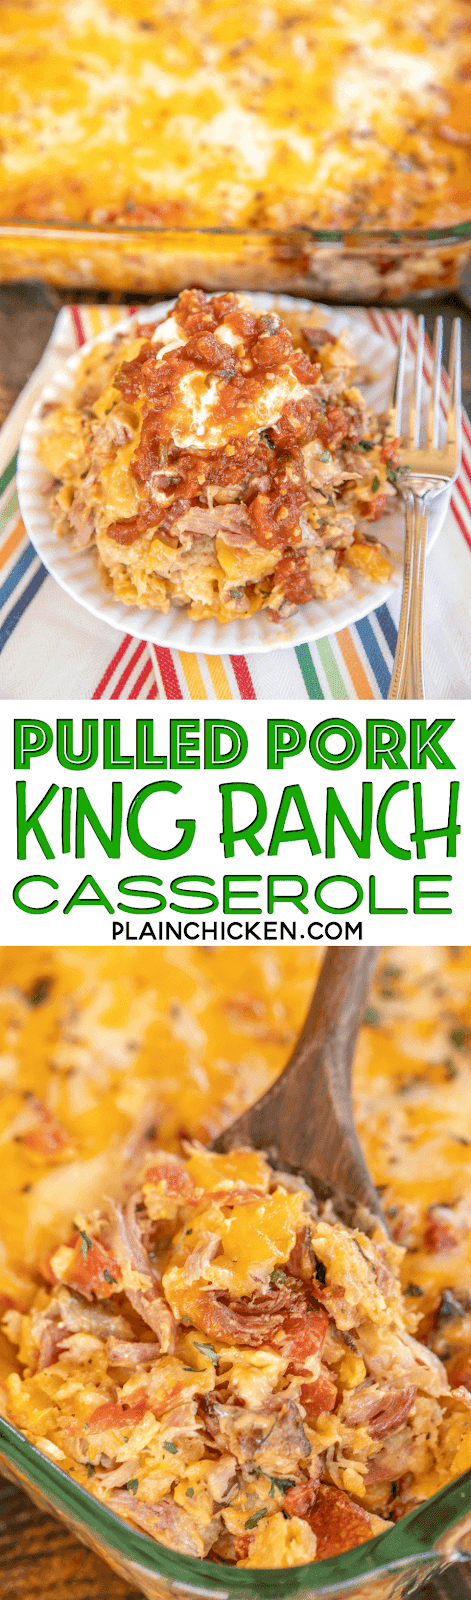 collage of pulled pork king ranch casserole